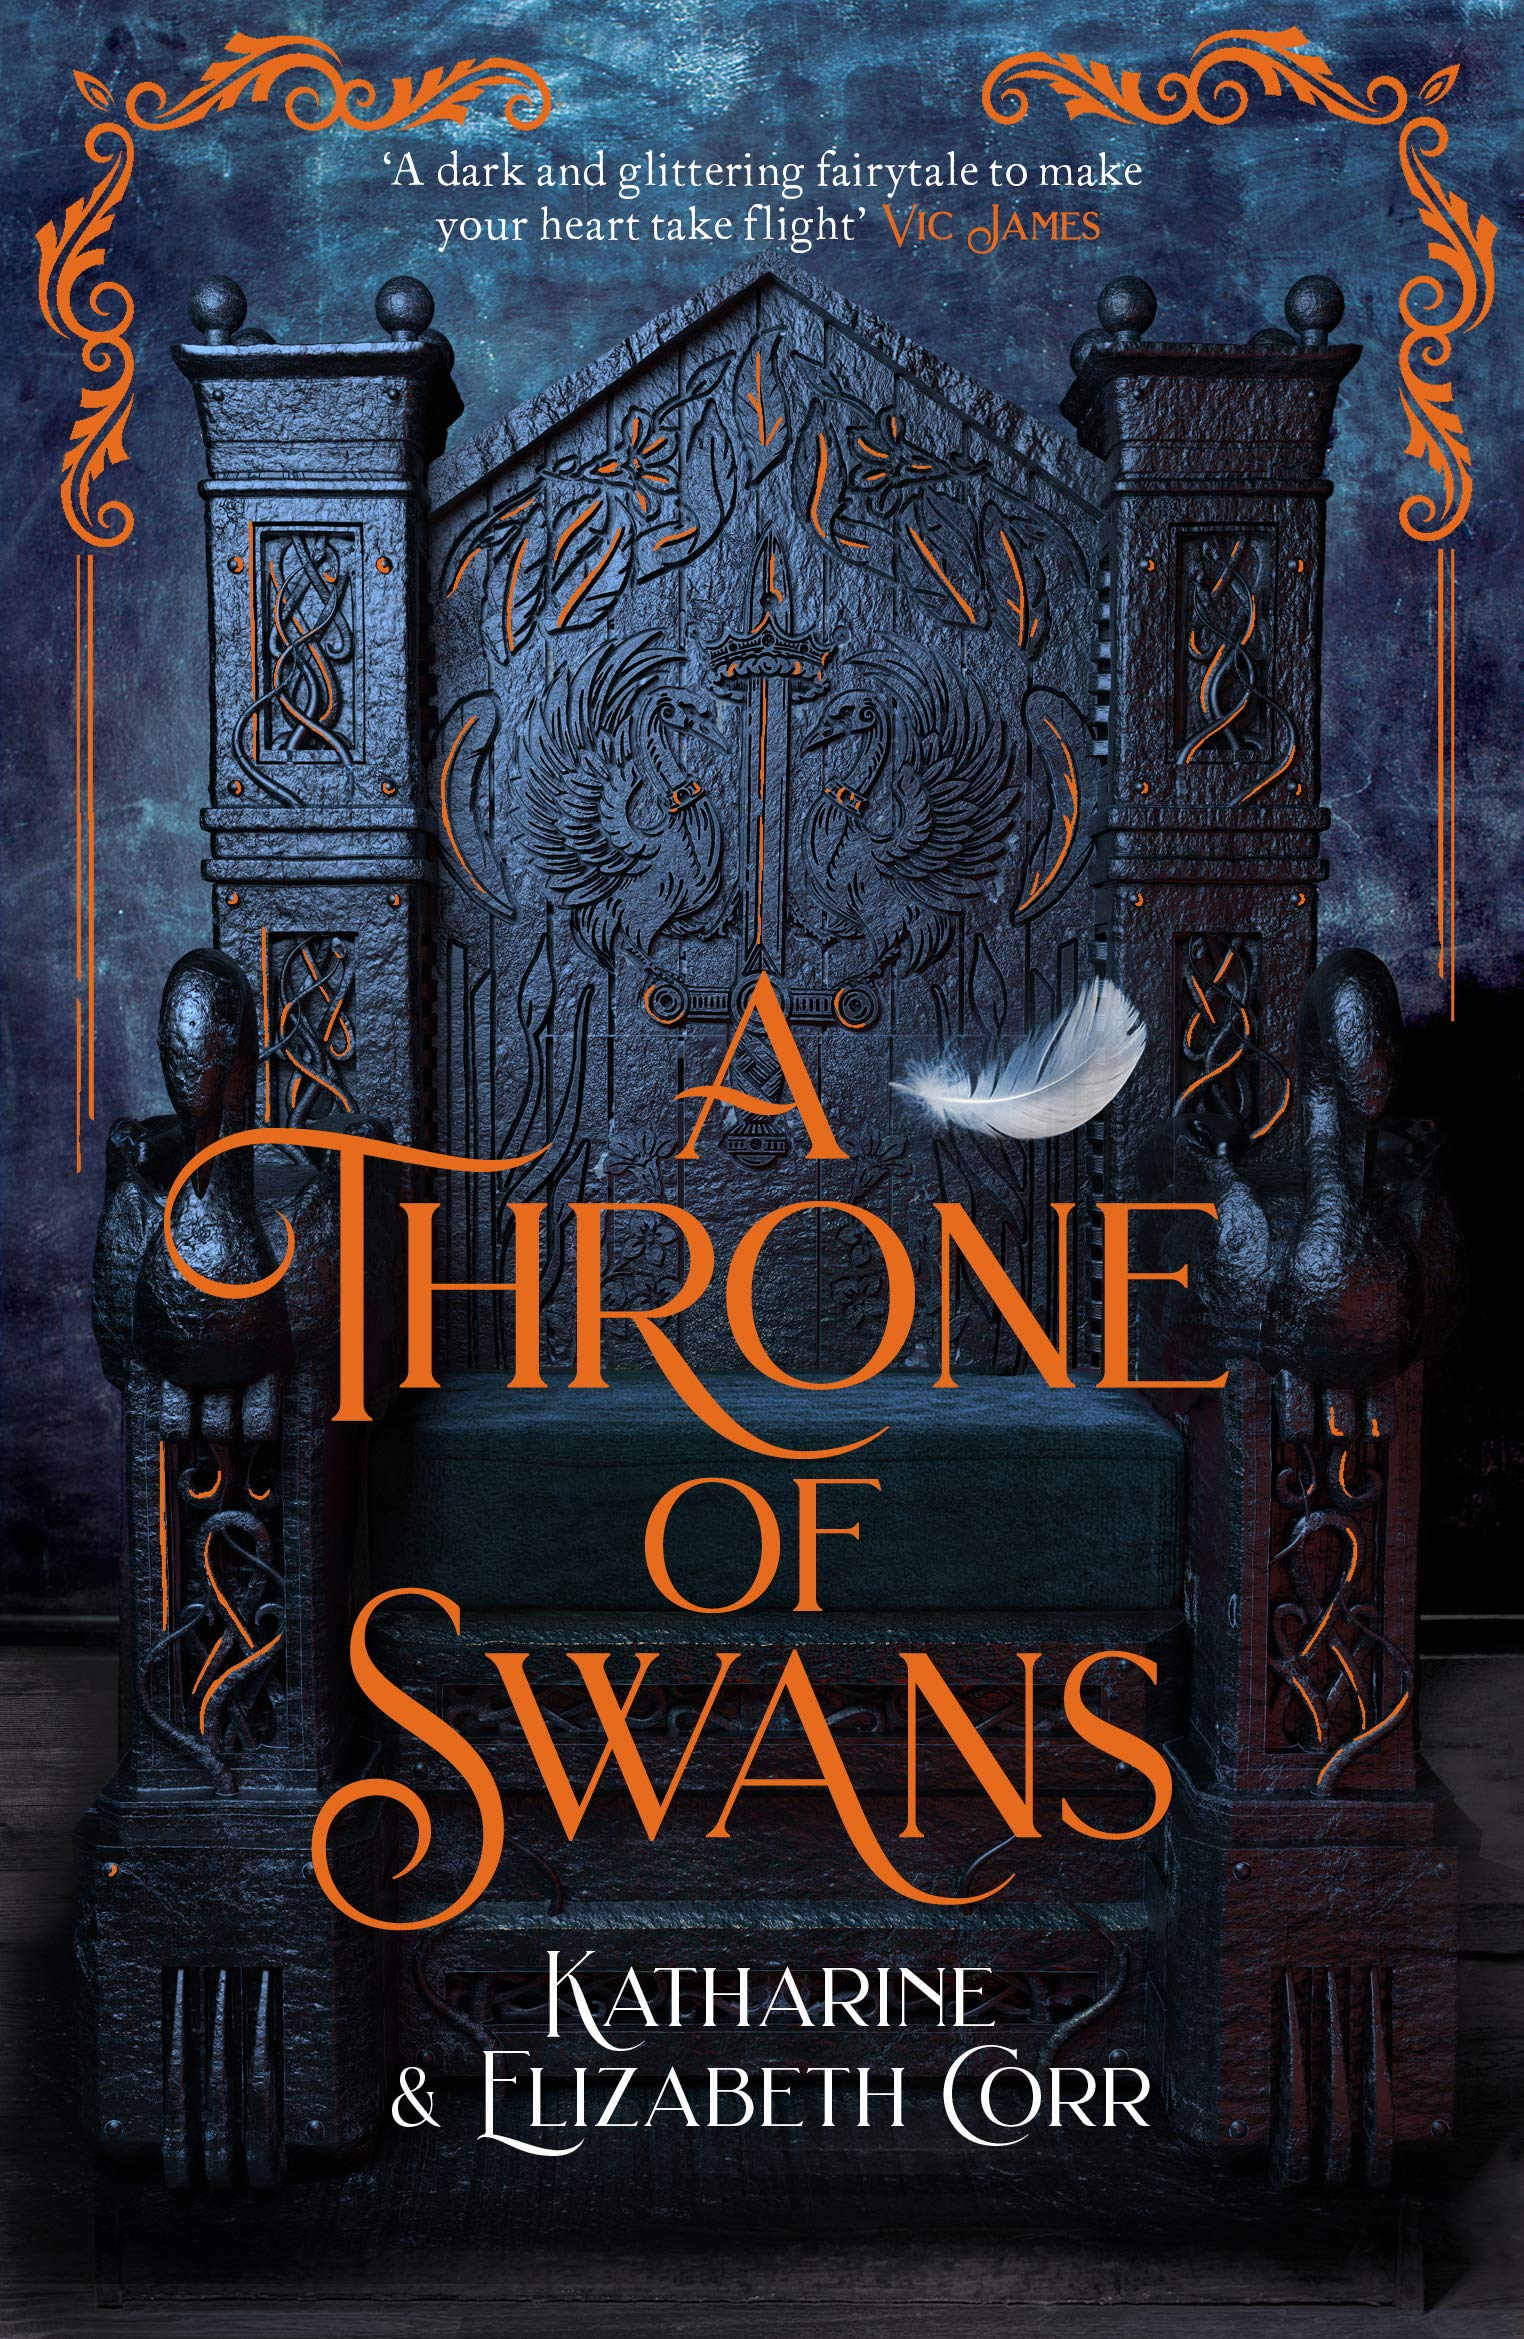 A Throne of Swans by Katharine Corr